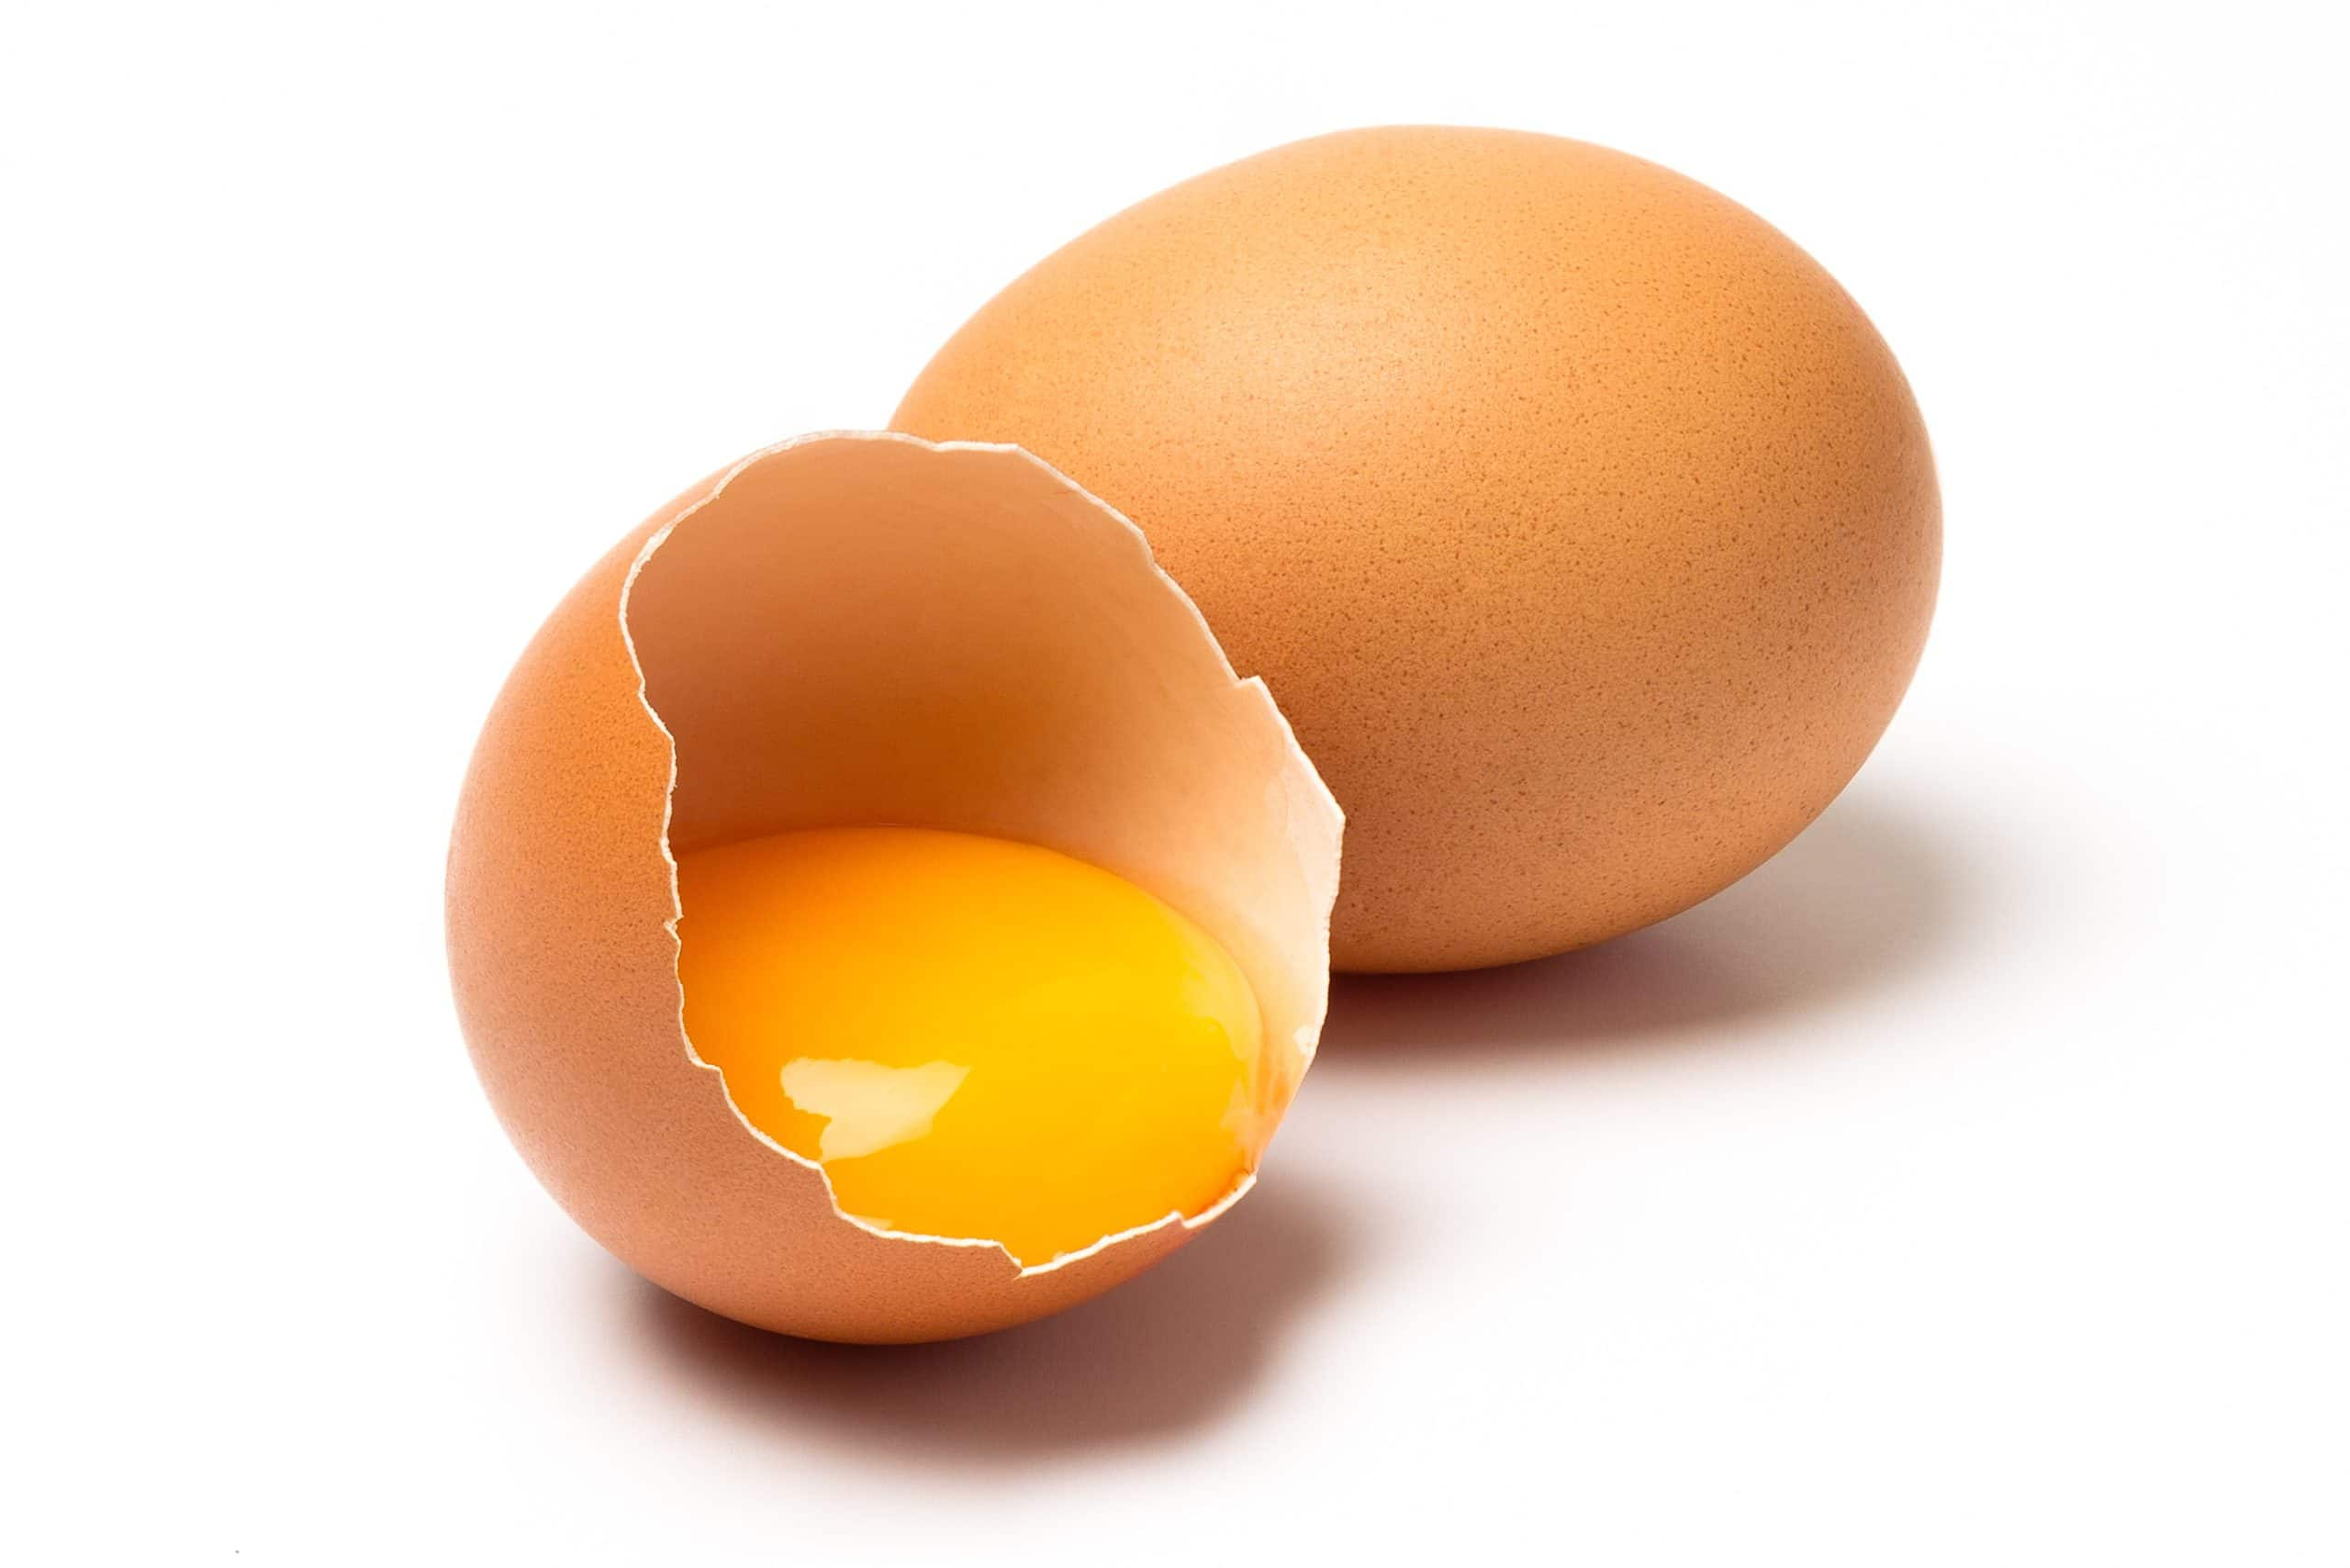 Health Benefits of Egg Yolks